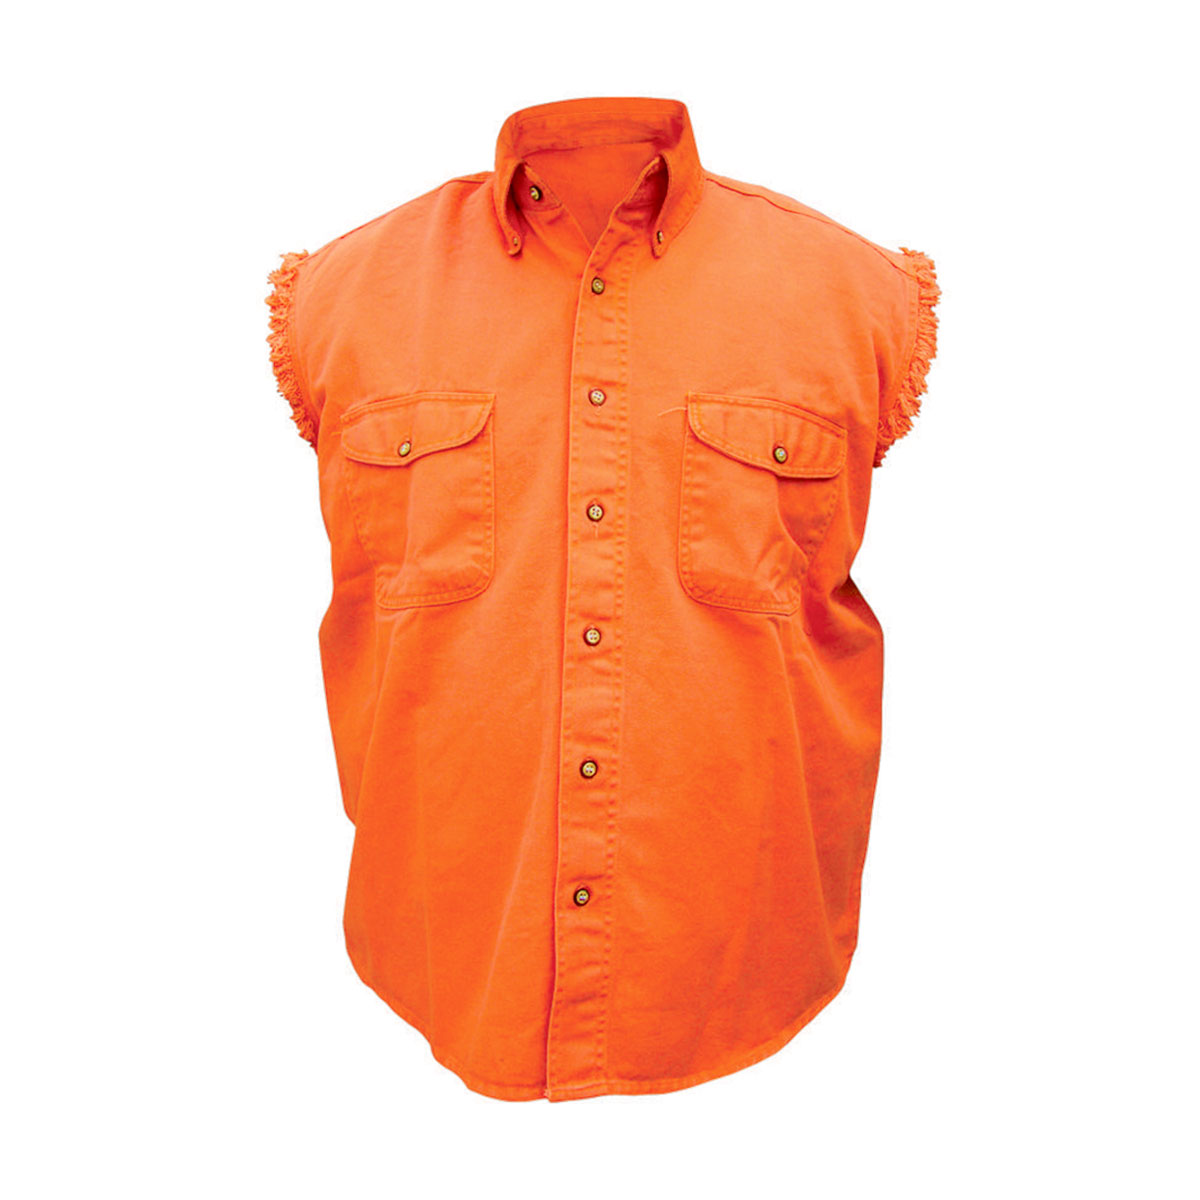 Allstate Leather Inc. Men's Cotton Button Down Orange Sleeveless Shirt